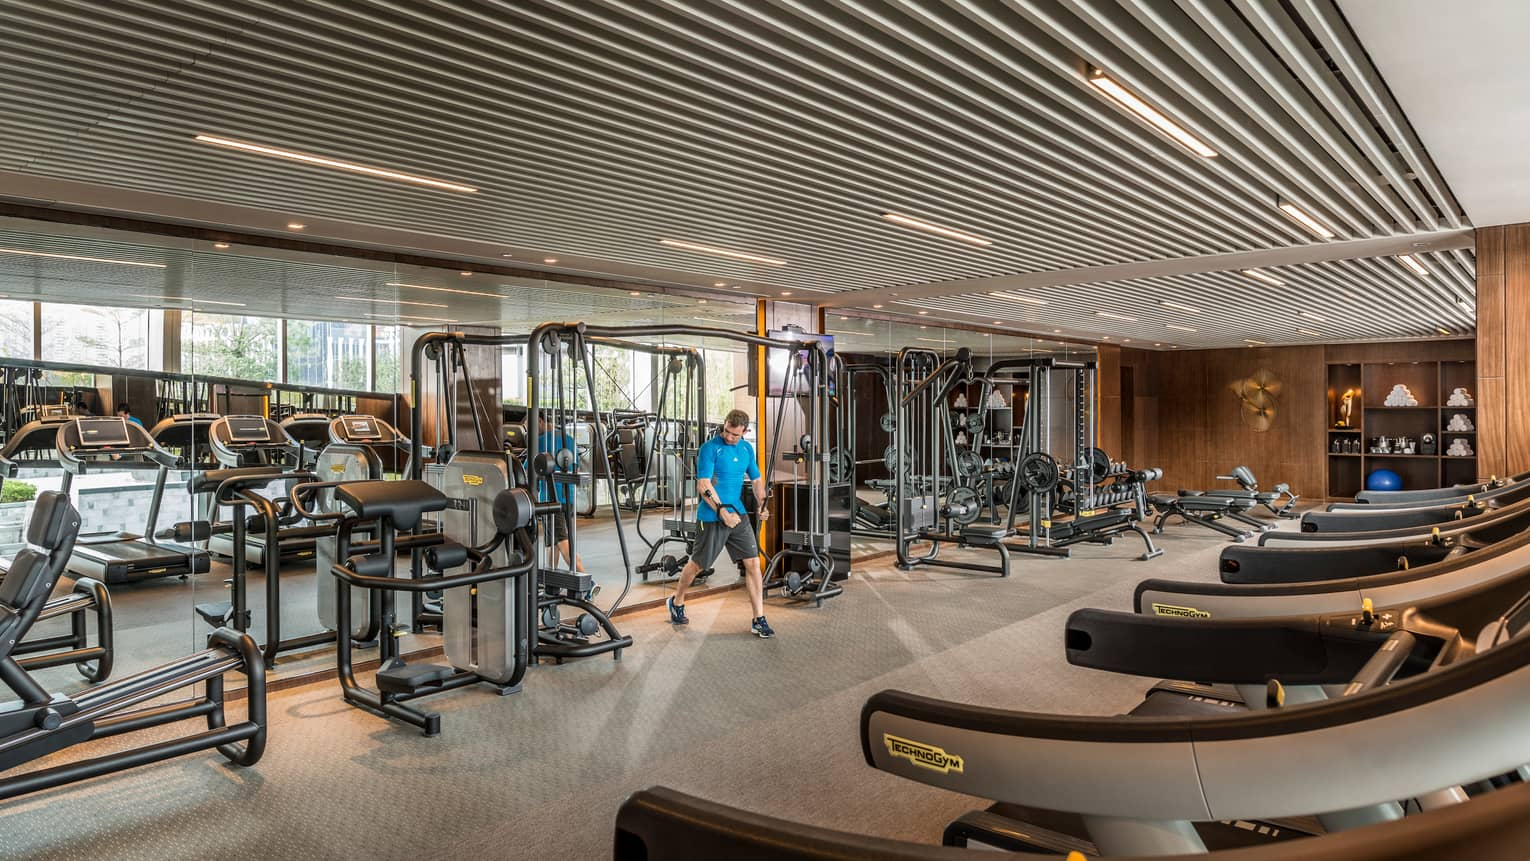 Man pulls weights machine in large Fitness Centre by mirror reflecting treadmills